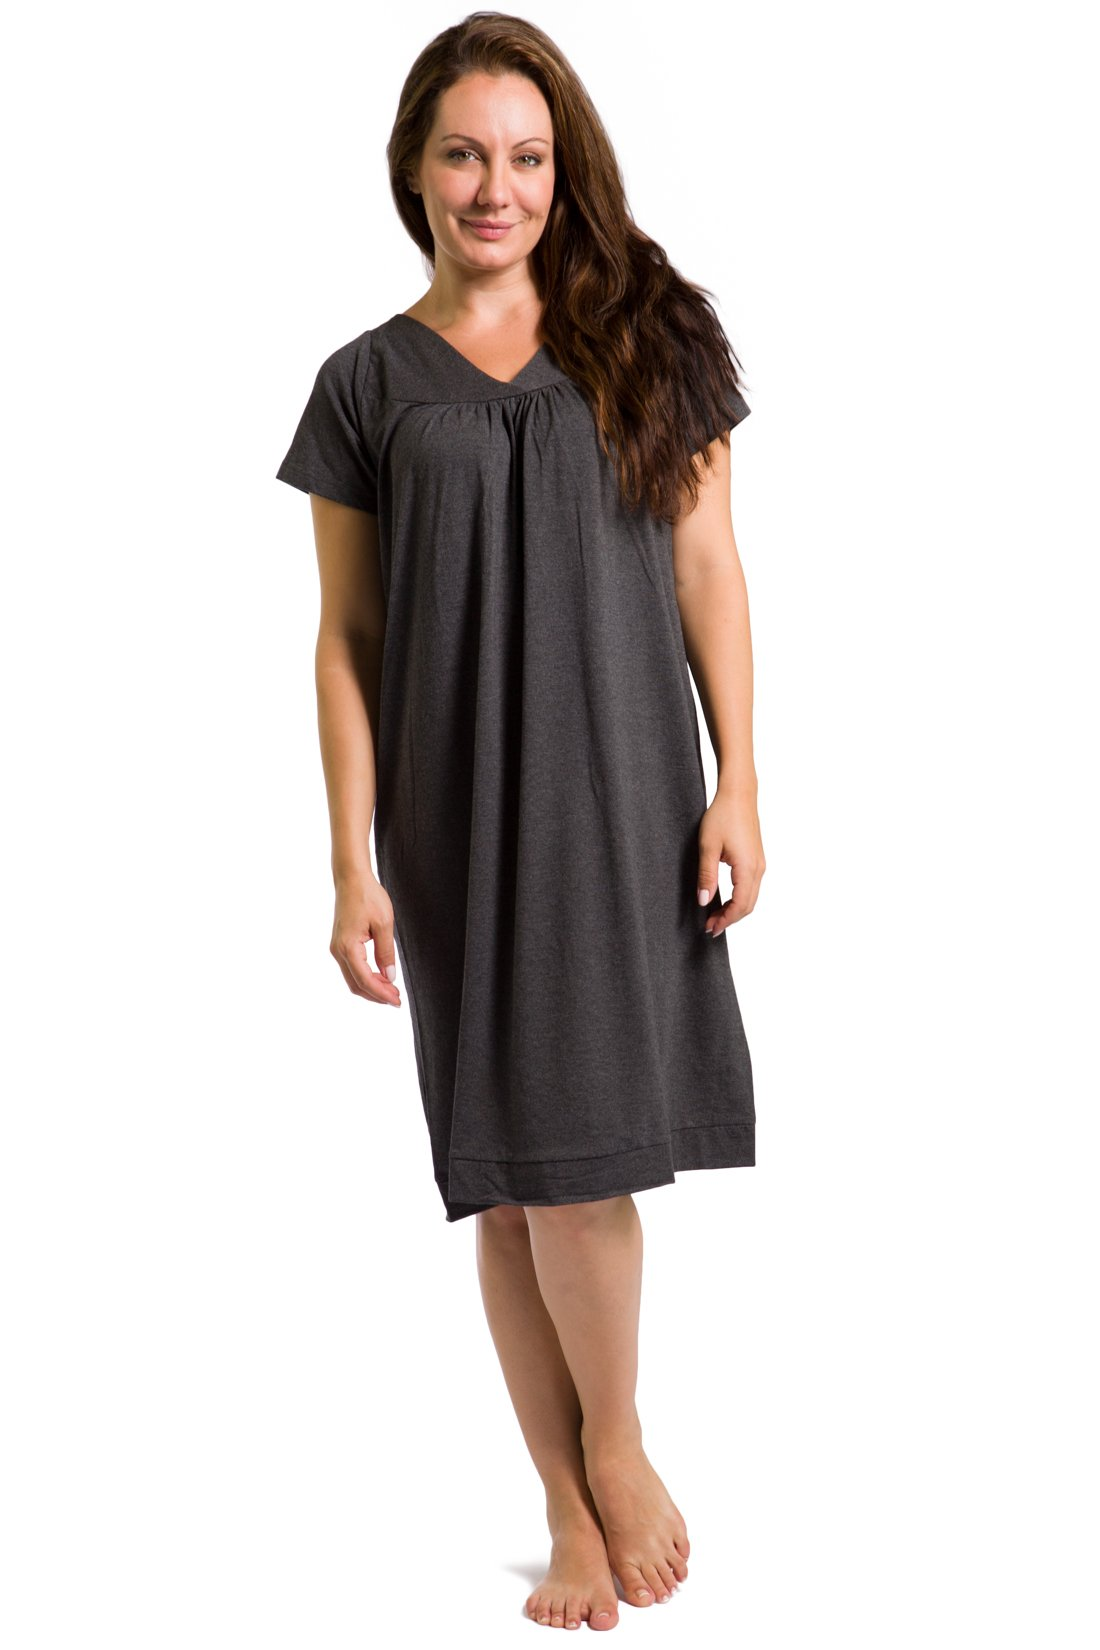 Fishers Finery Women's Tranquil Dreams Short Sleeve Nightgown Comfort Fit, Heather Gray, XX-Large